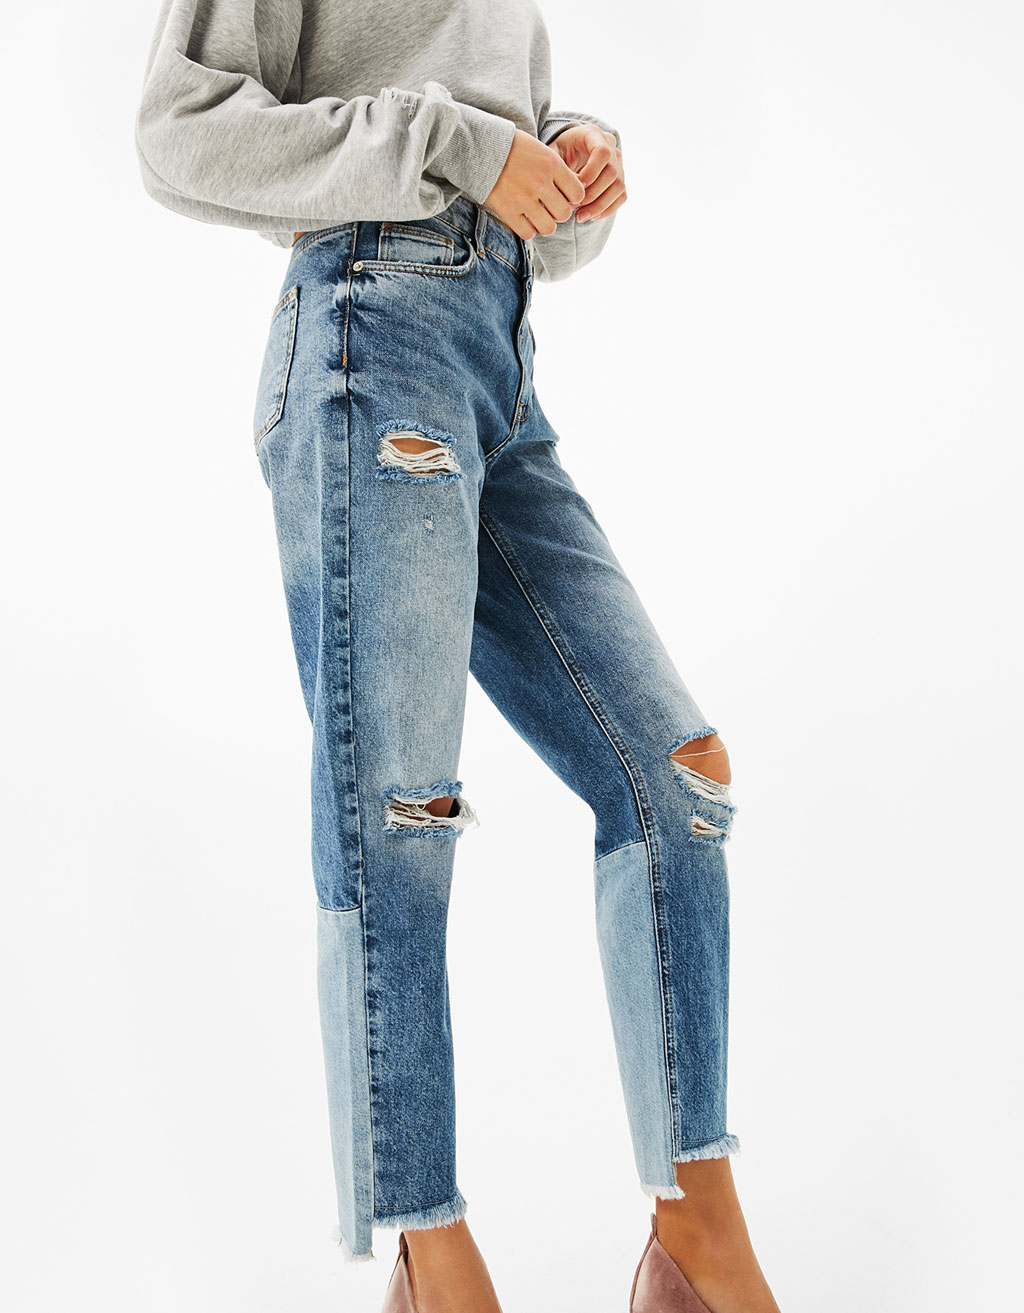 Fitted girlfriend jeans with contrasting cuffs